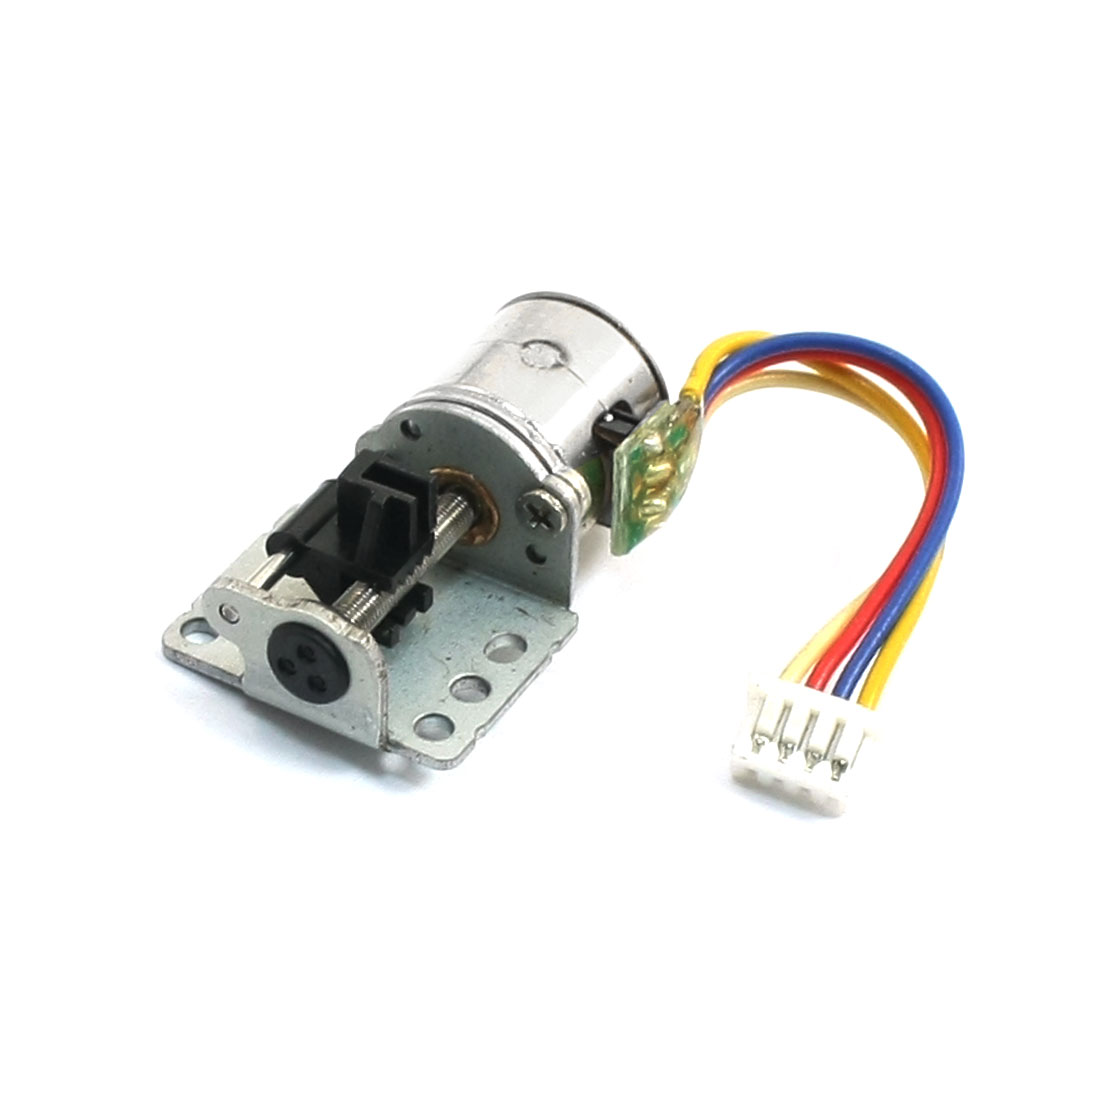 80RPM 380mA 2 Phase 7.5C Micro DC Stepper Motor Gray